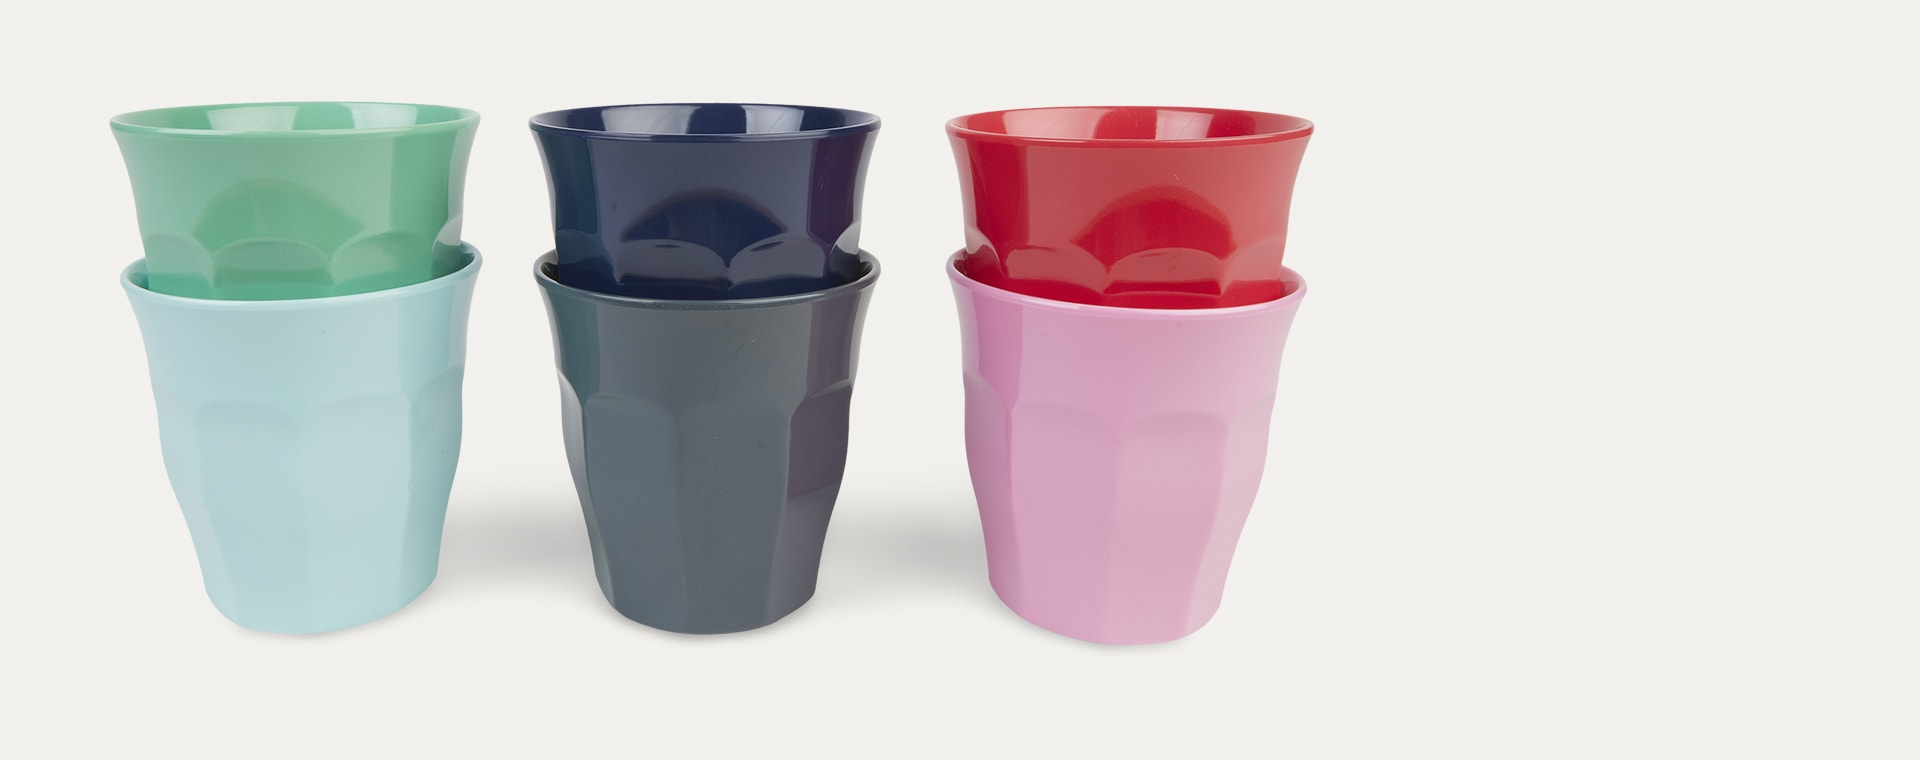 Red Lipstick Rice Melamine Cups 6 Pack